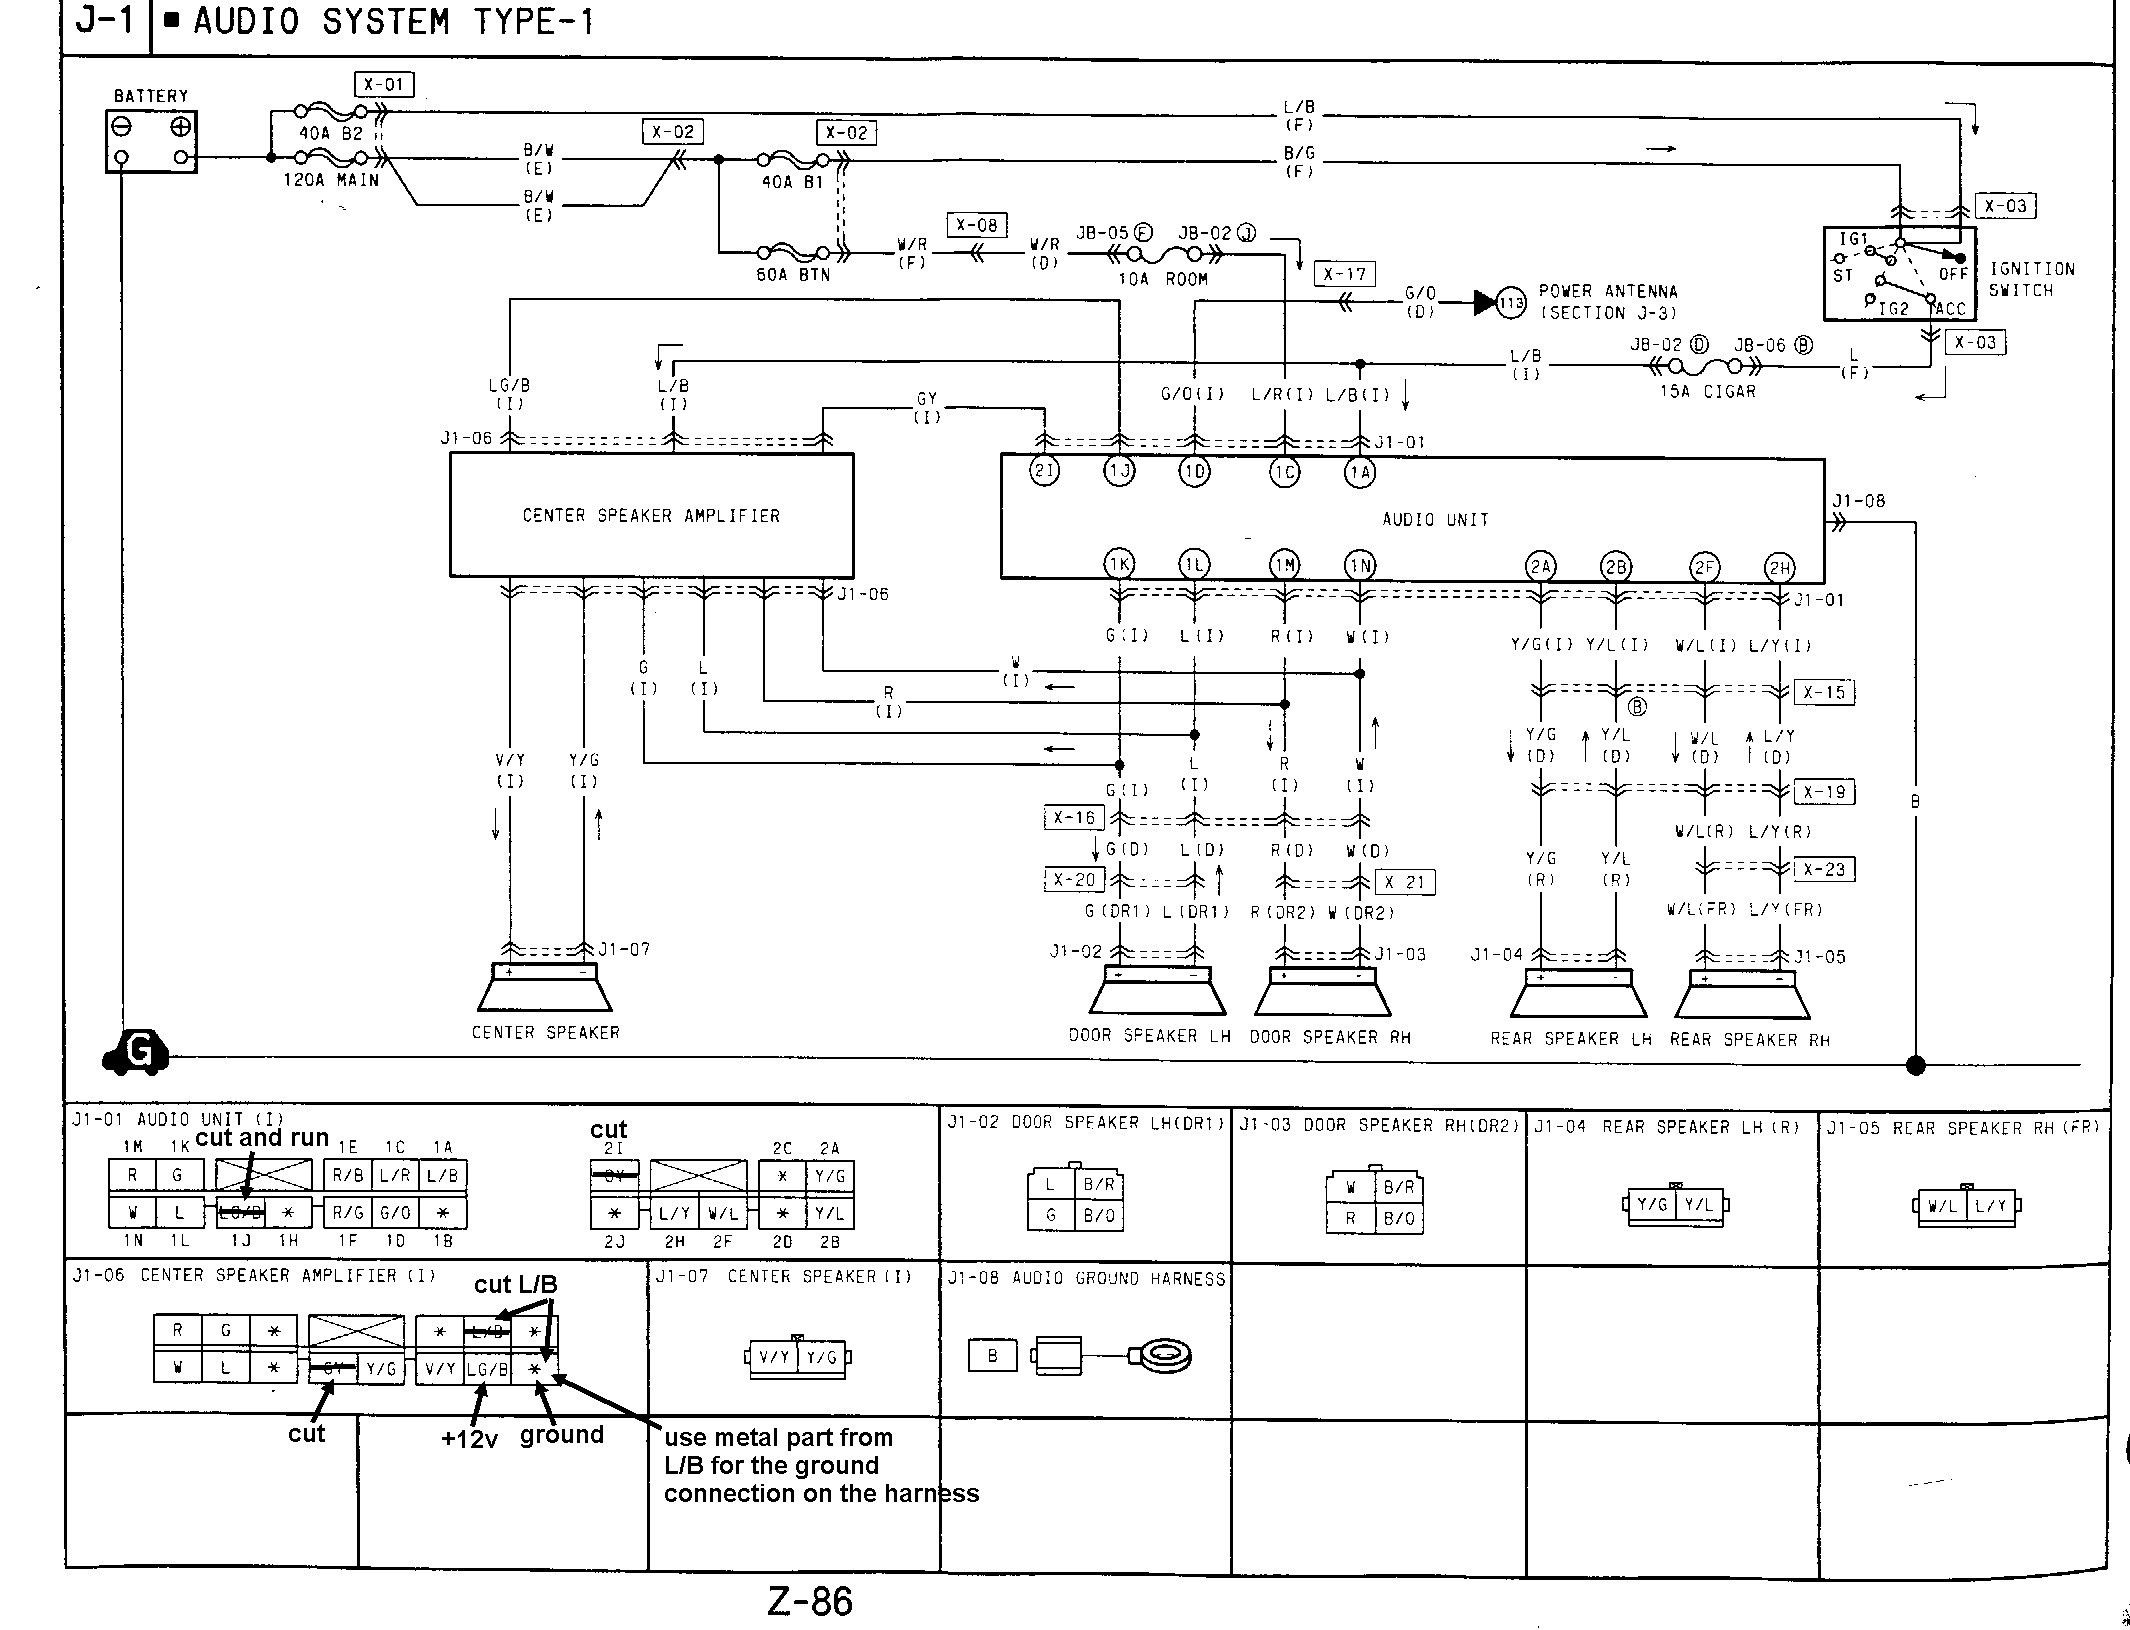 Unique Audi A4 Bose Amp Wiring Diagram #diagram #diagramtemplate  #diagramsample | Car amplifier, Diagram, Electrical wiring diagram | Audi Symphony Wire Diagram |  | Pinterest